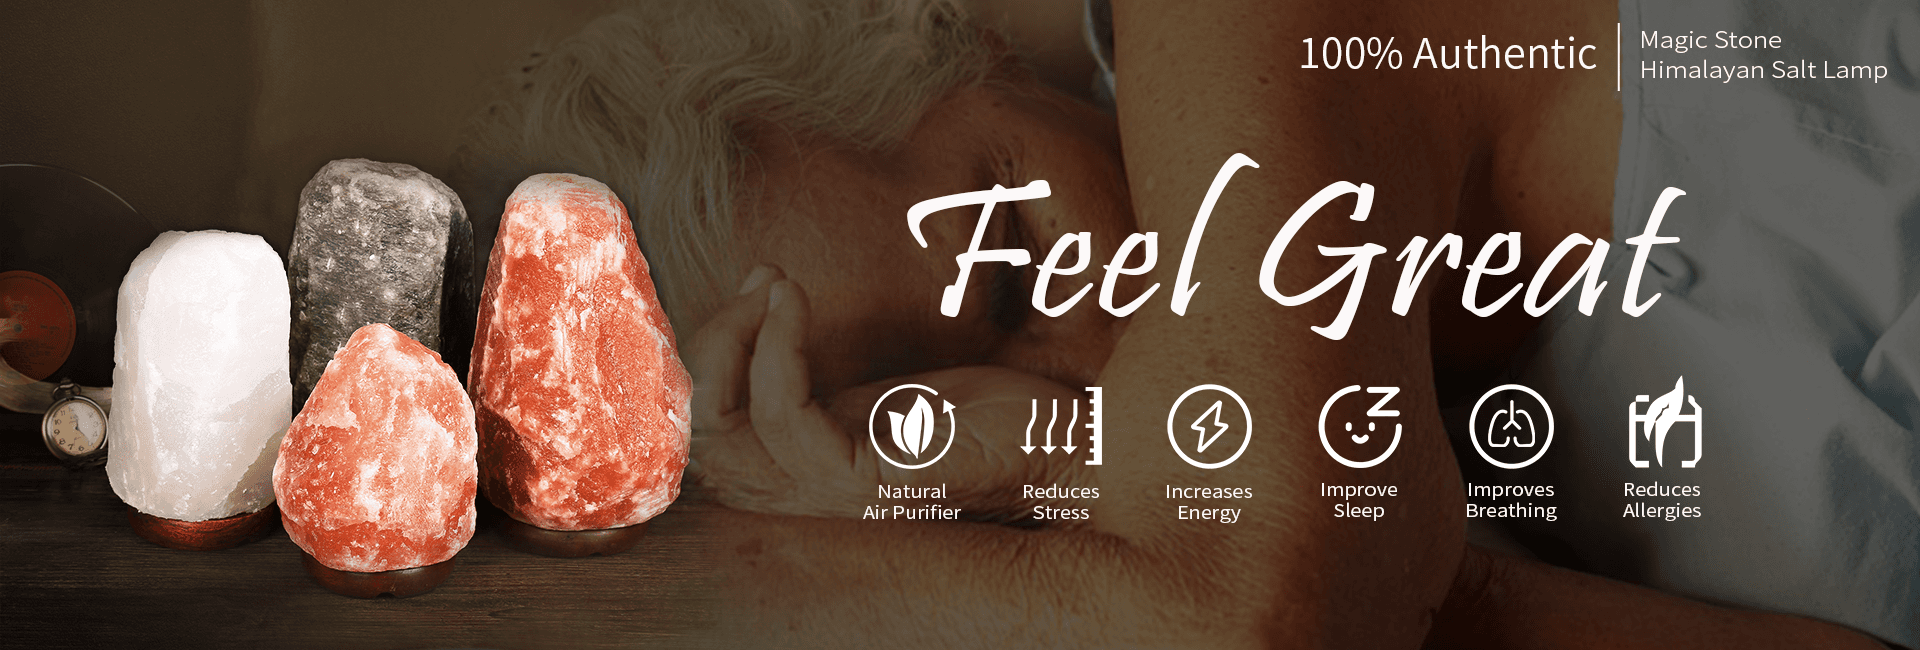 Himalayan Salt Lamp - Magic Stone (1)